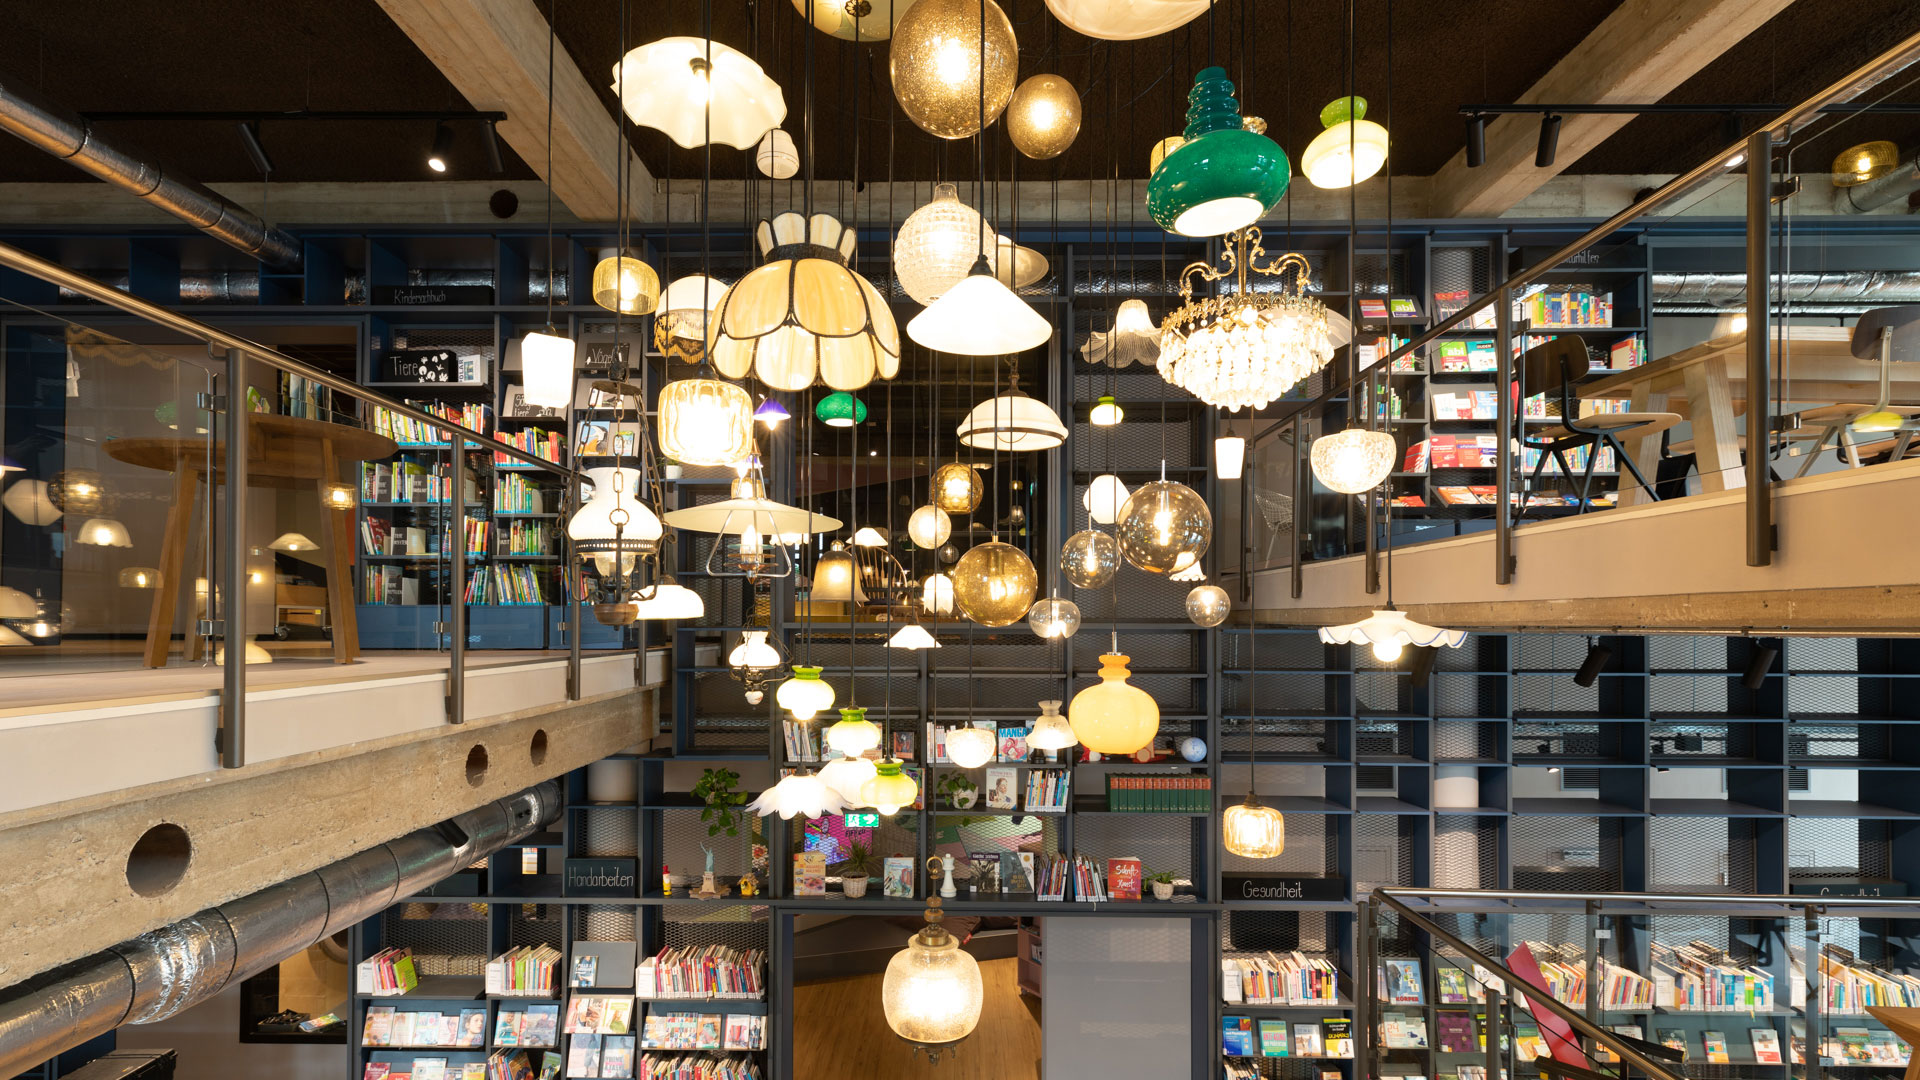 Langenfeld library lamps